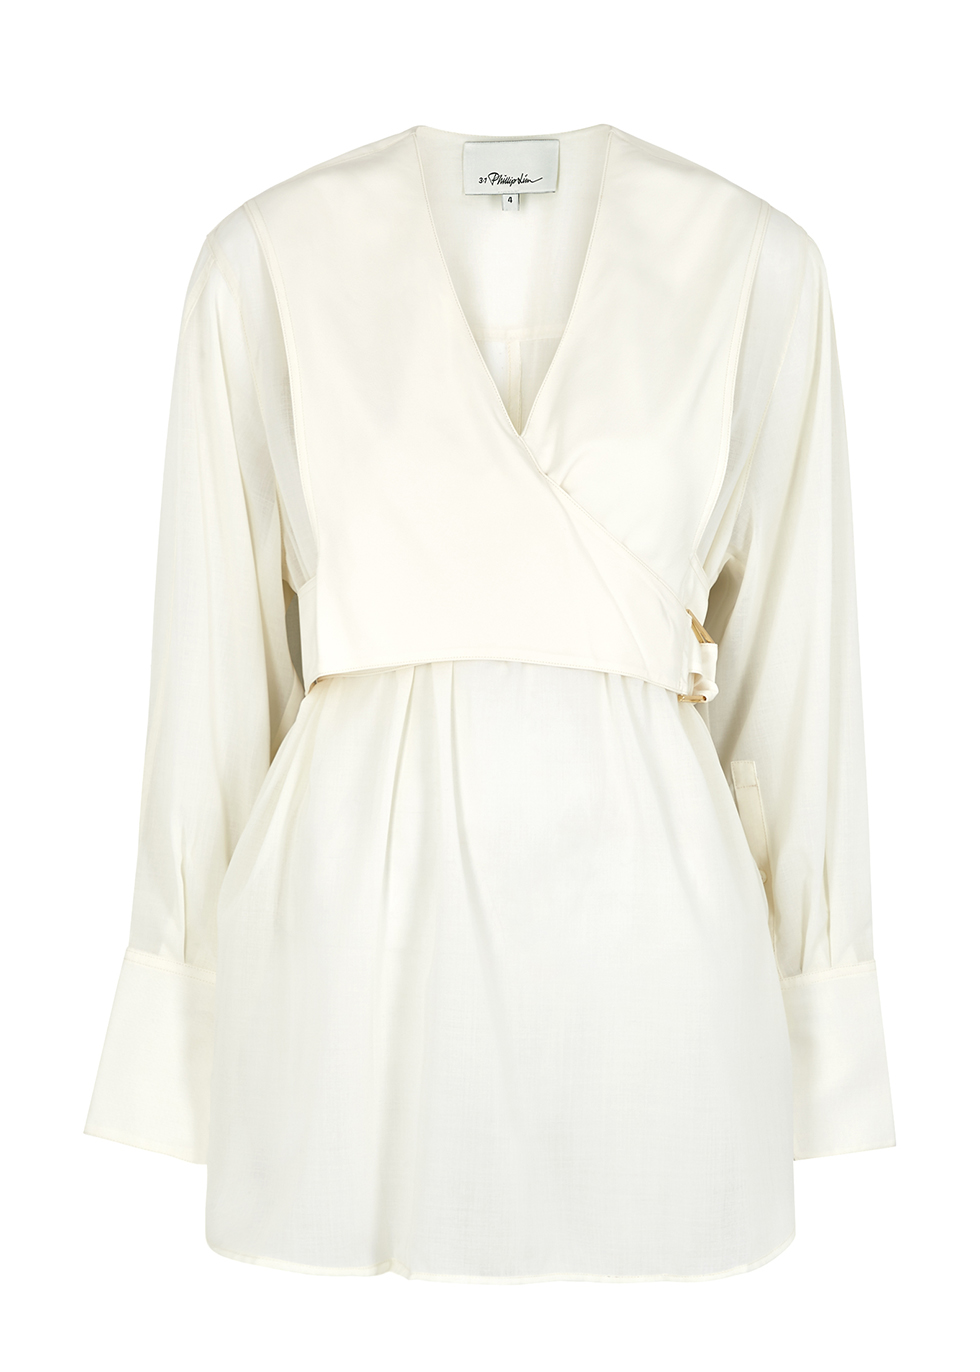 Ivory voile wrap blouse